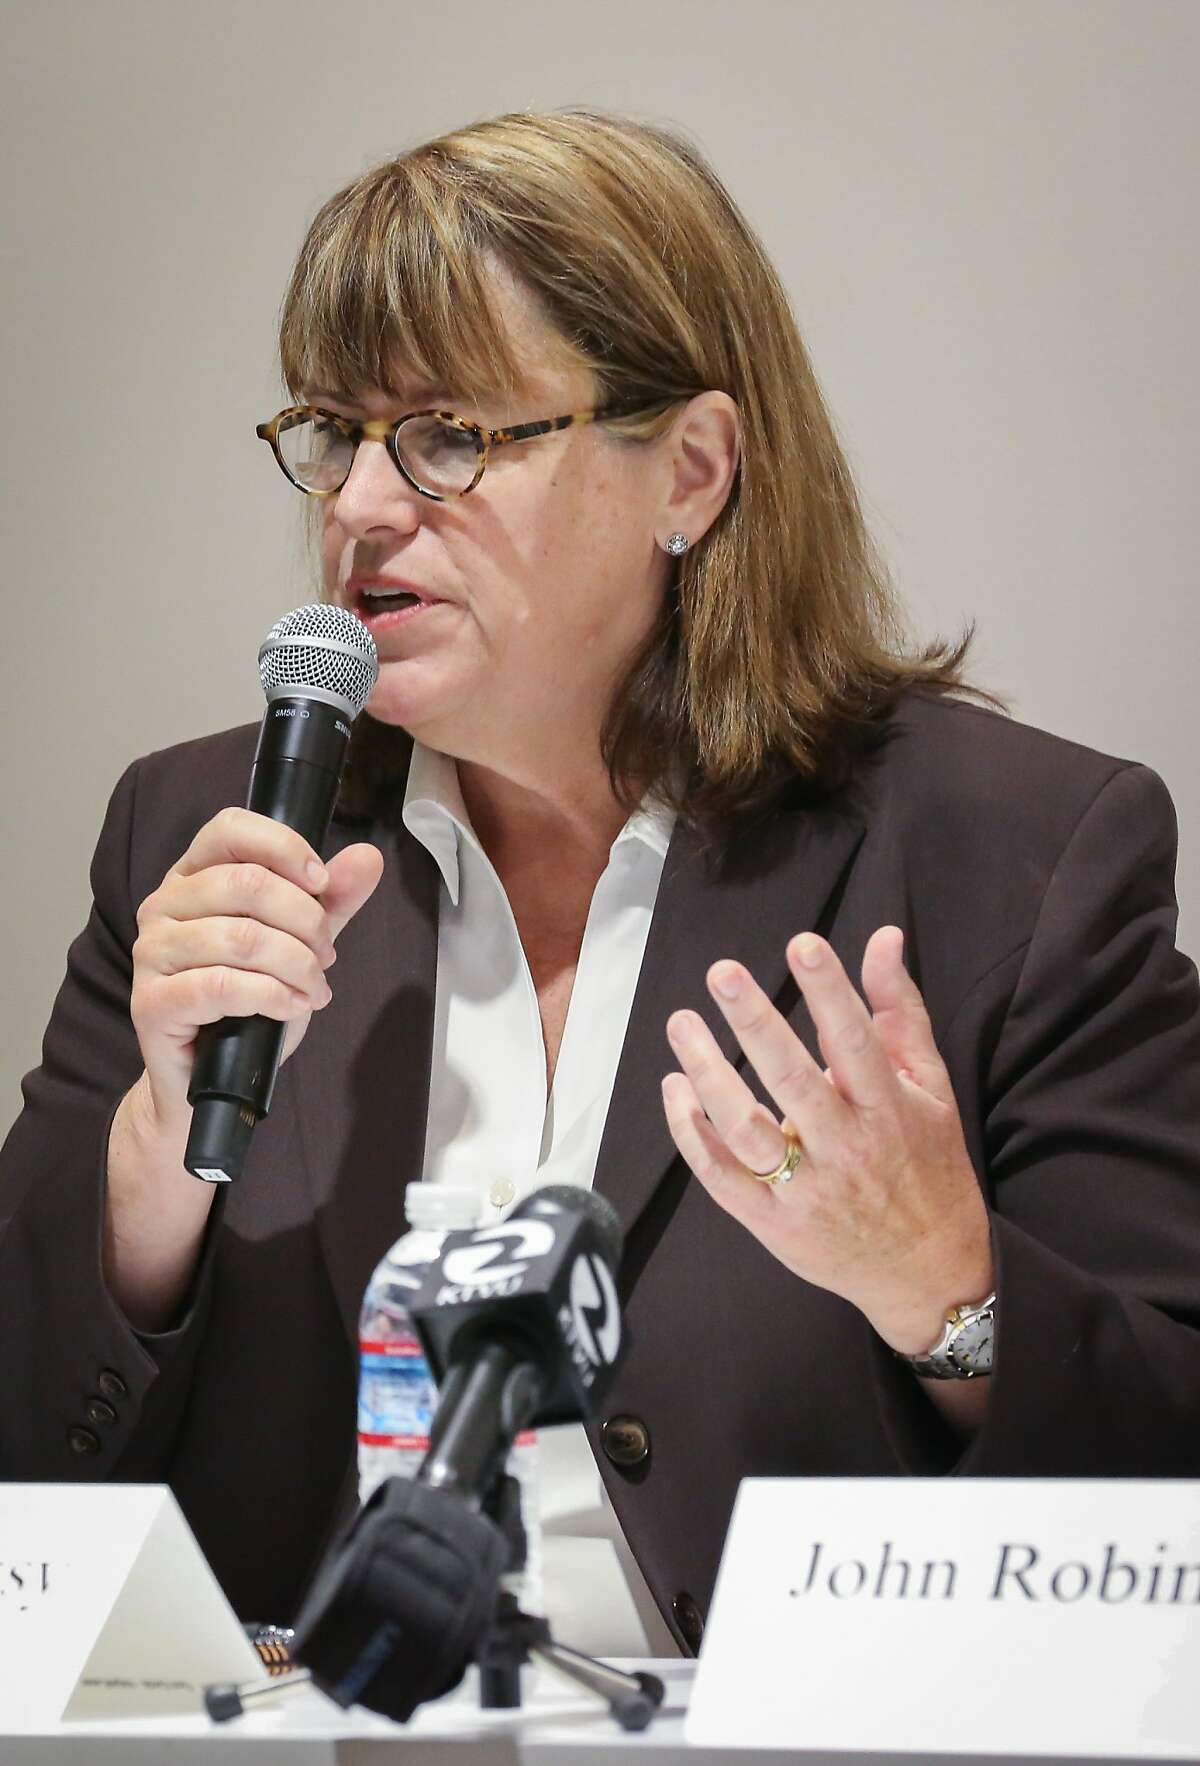 Sheriff candidate Vicki Hennessy responds to a question during the debate against current sheriff Ross Mirkarimi and candidate John Robinson at Zendesk on Tuesday, August 11, 2015 in San Francisco, Calif.